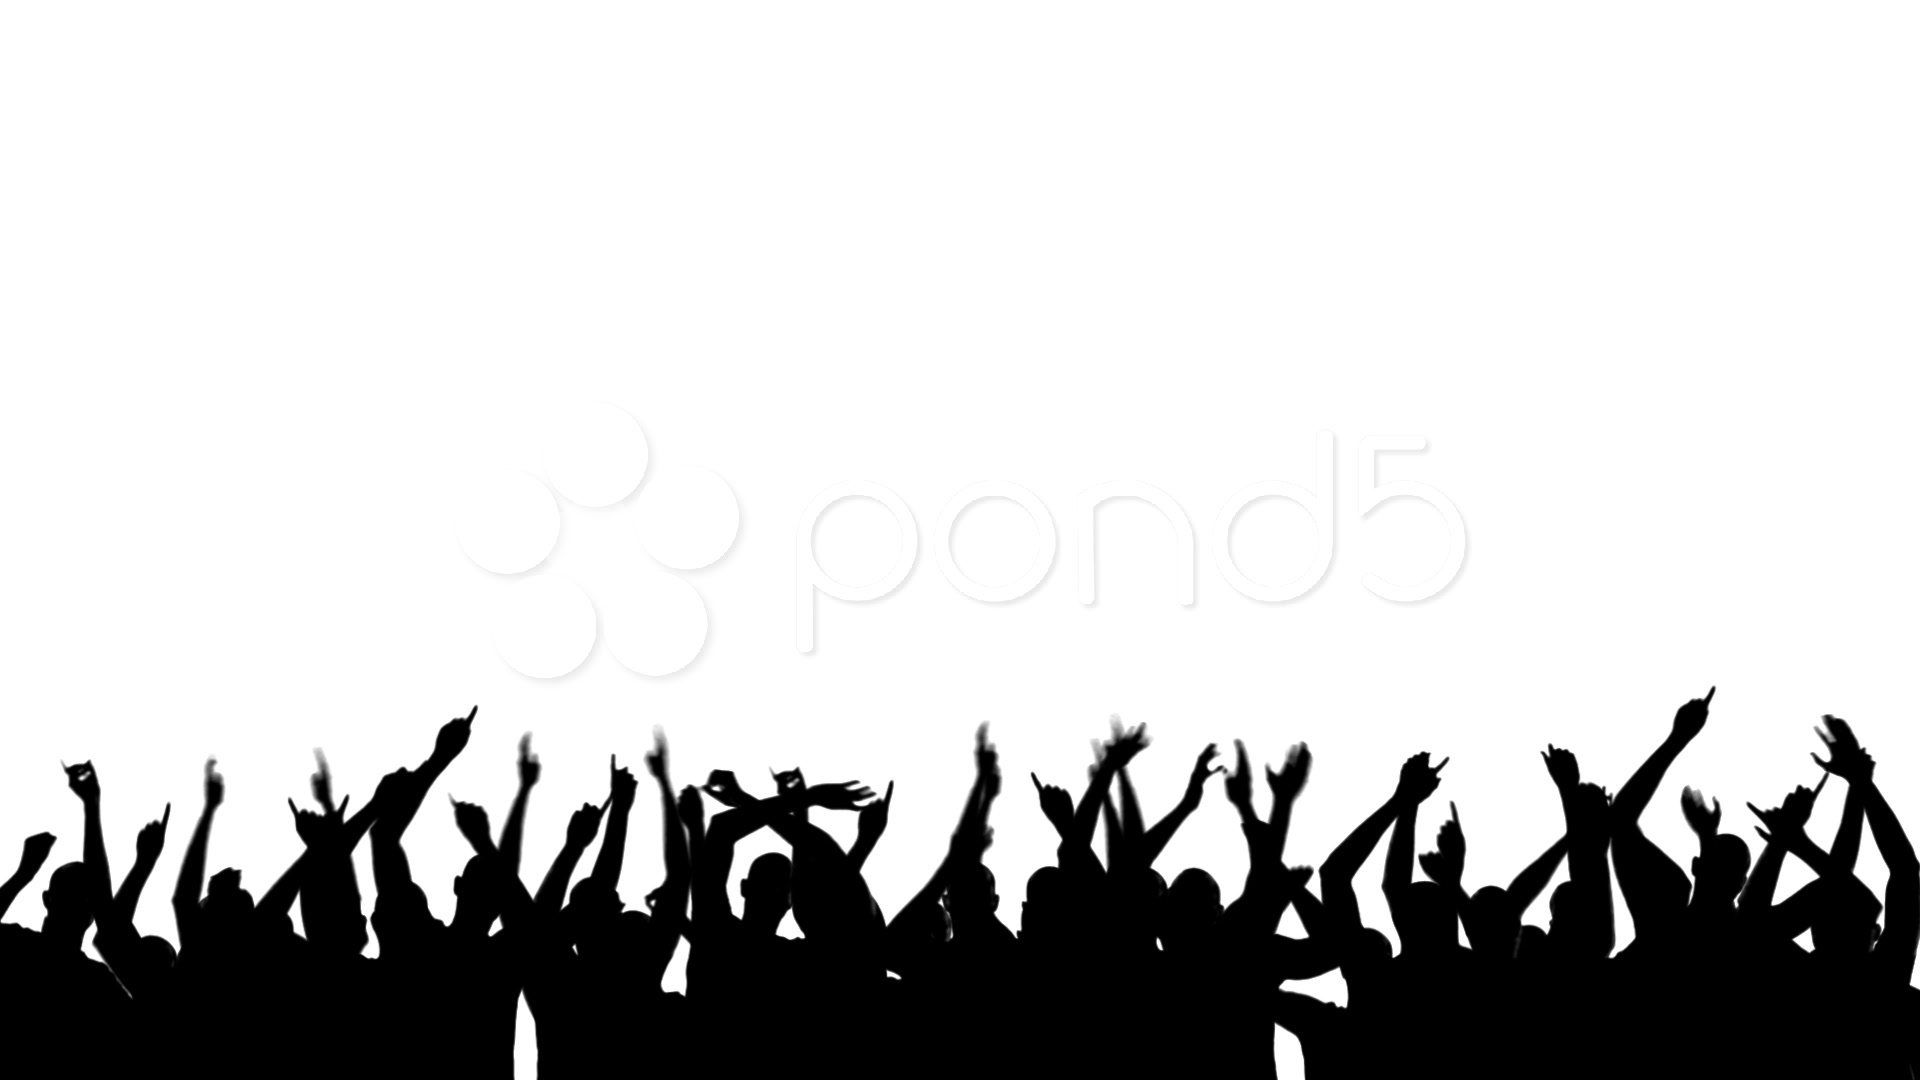 Crowd clipart. Silhouette